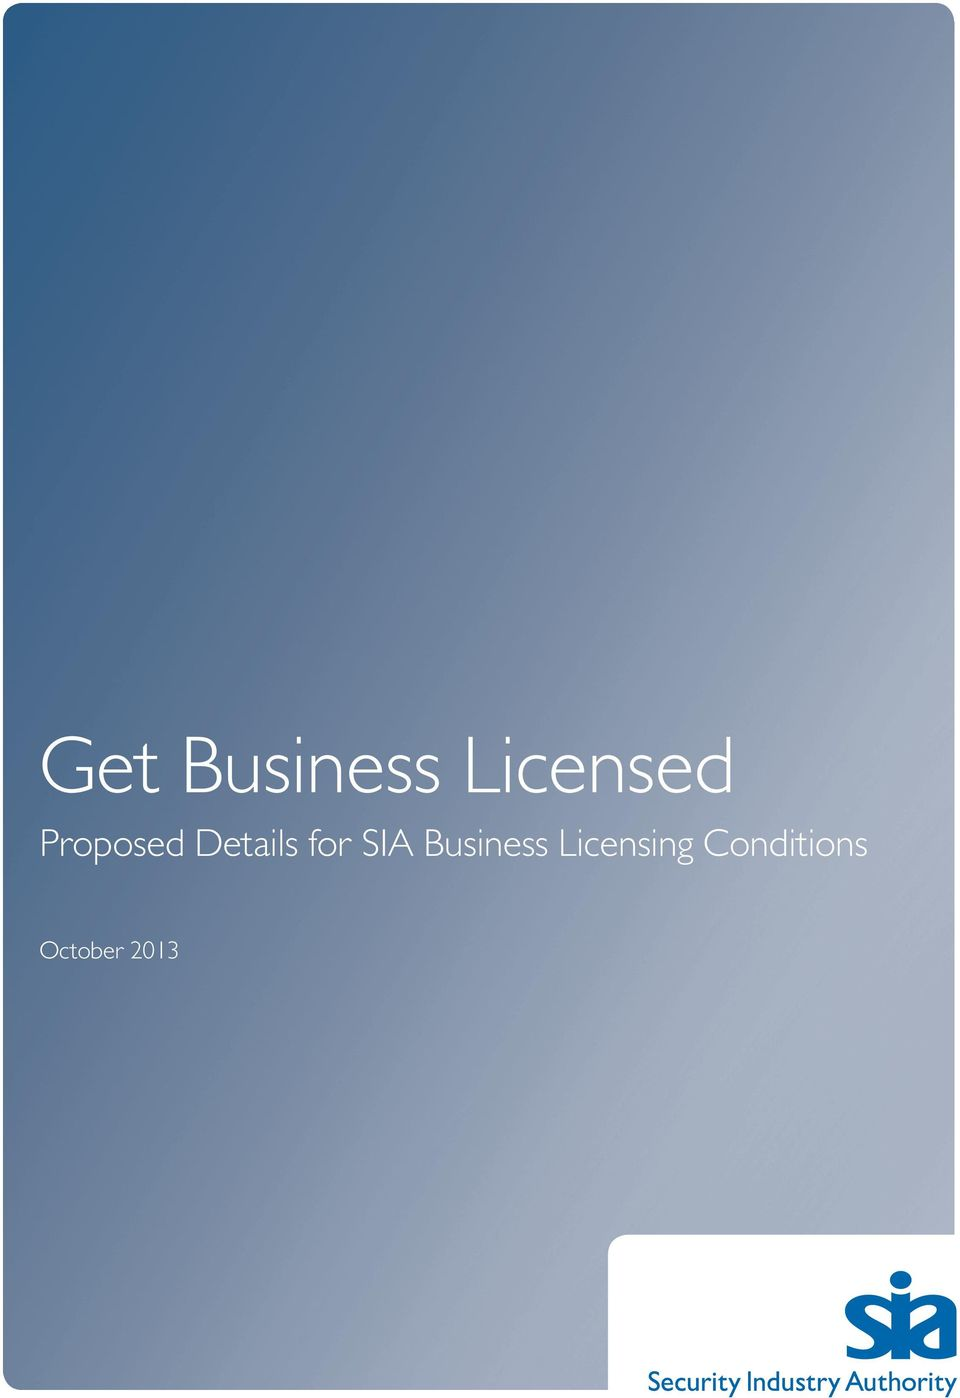 SIA Business Licensing